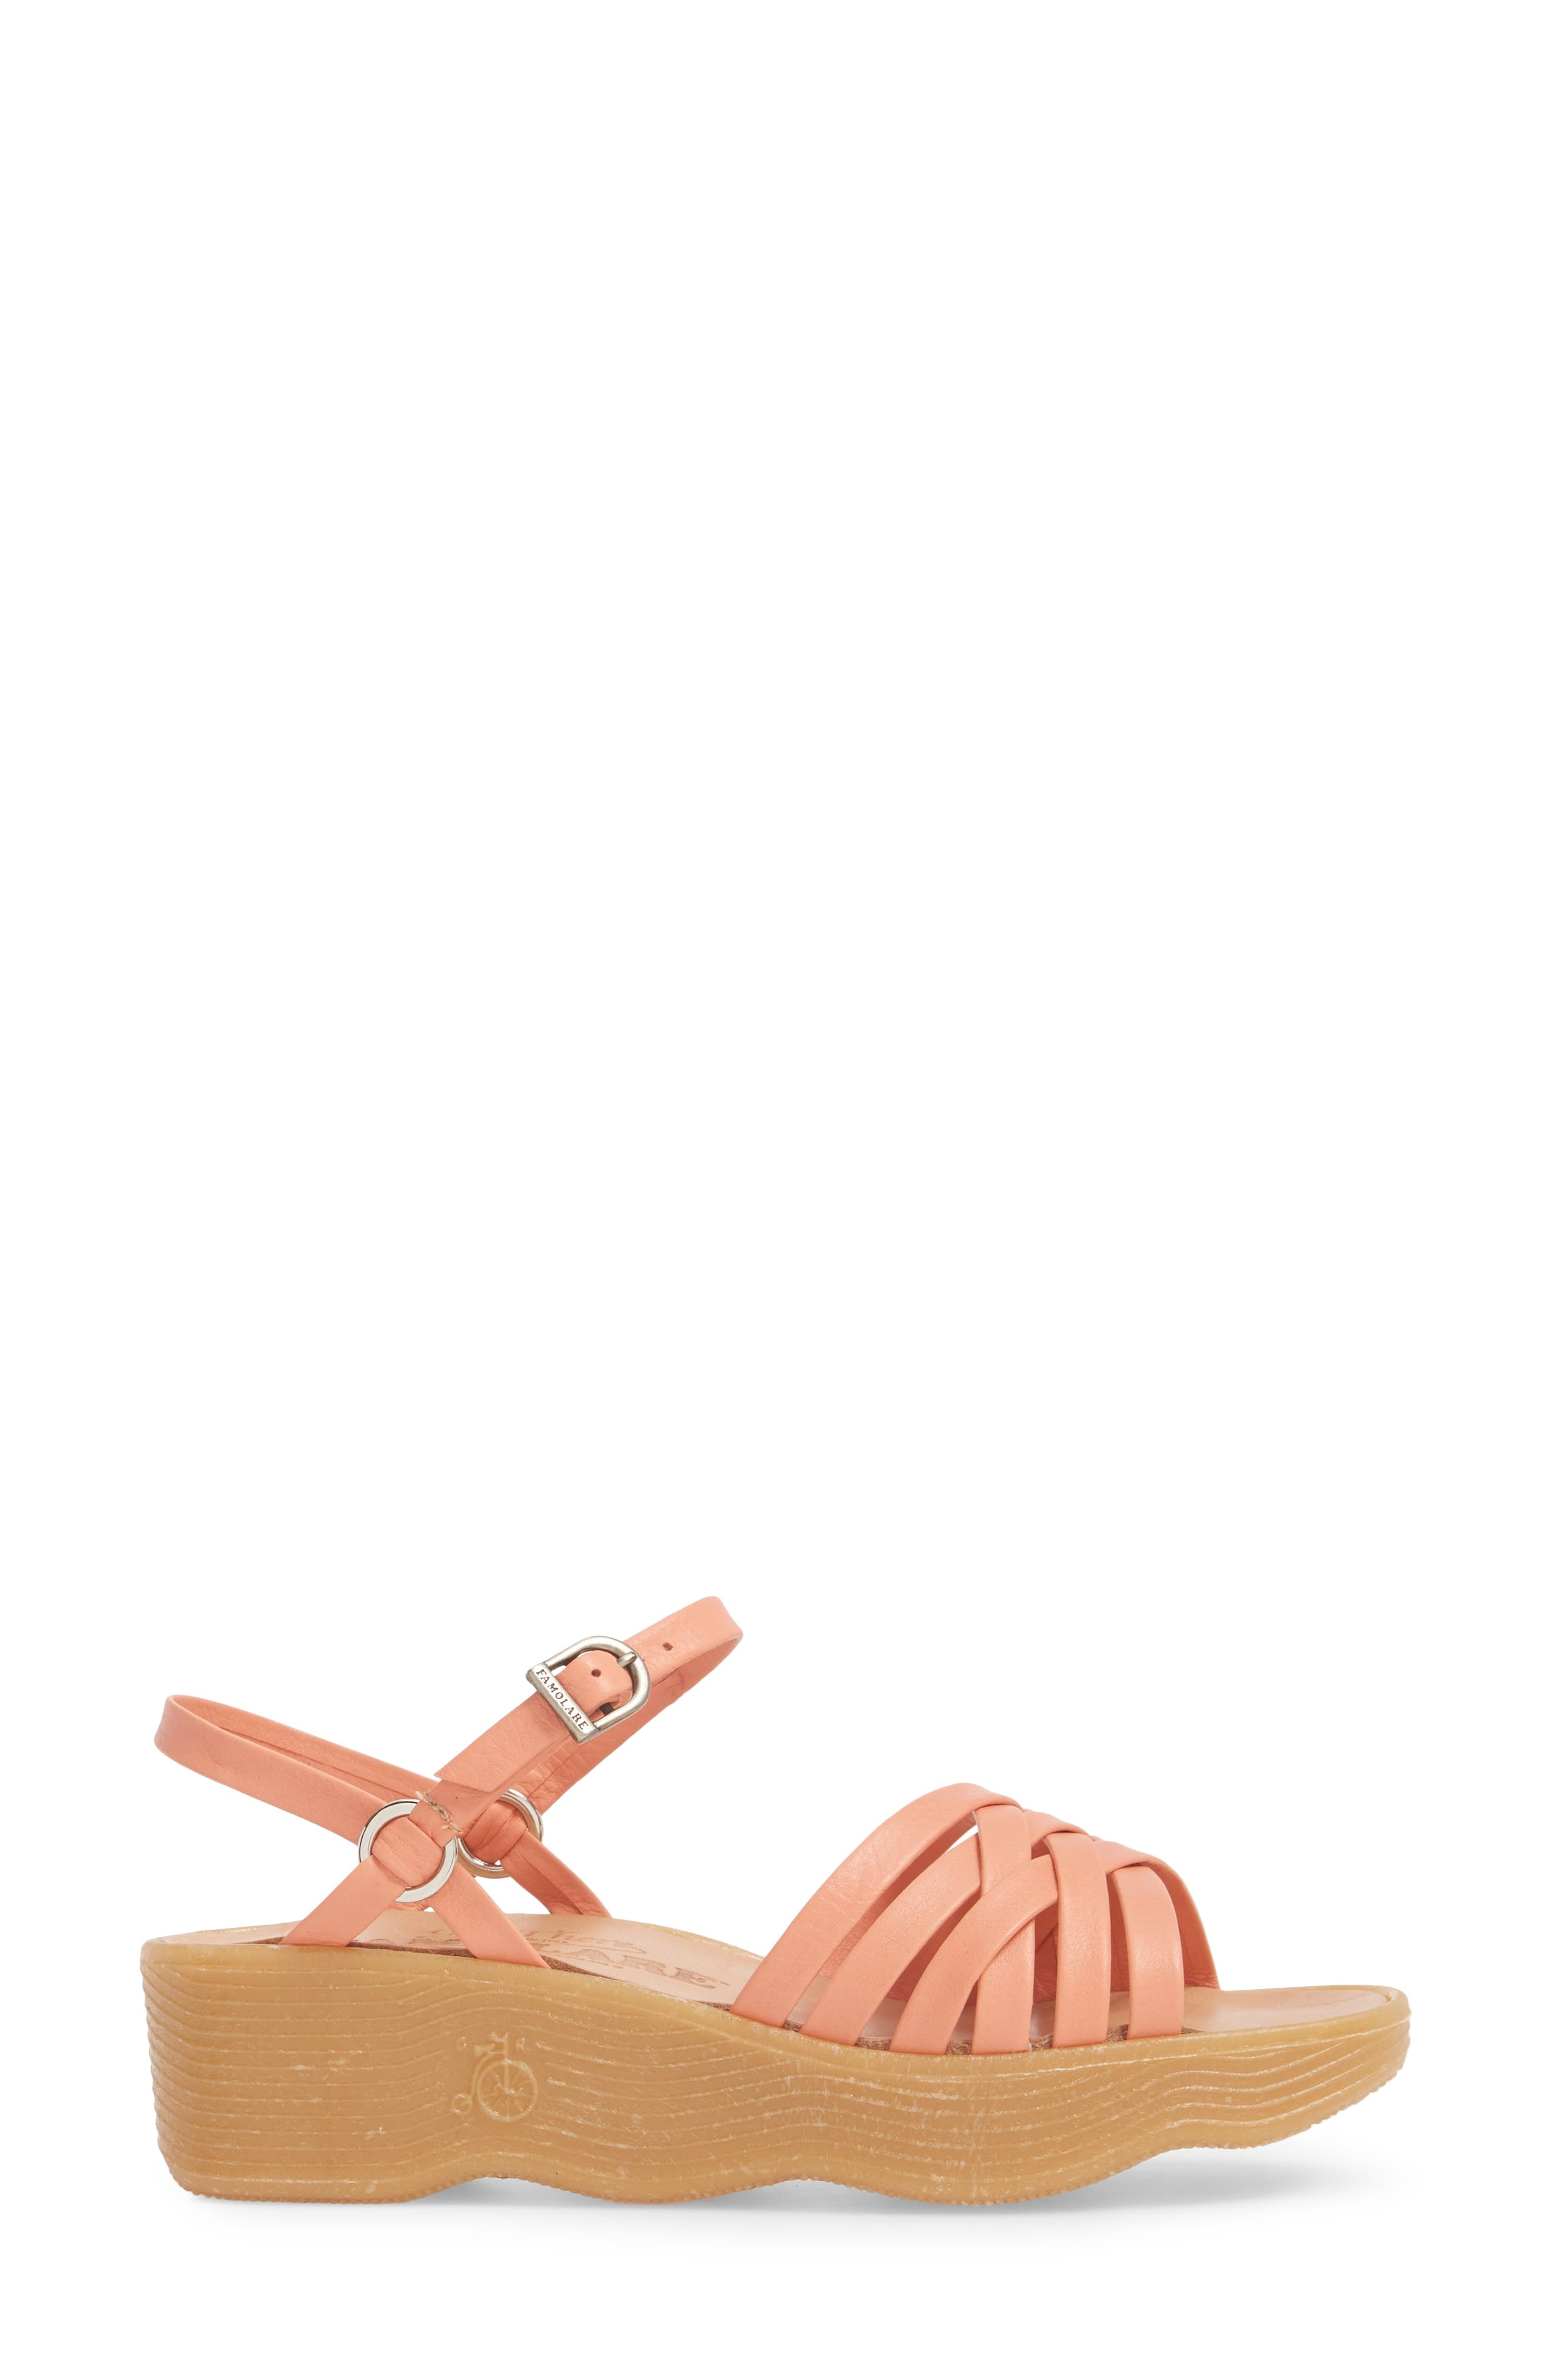 Strappy Camper Sandal,                             Alternate thumbnail 3, color,                             Salmon Leather